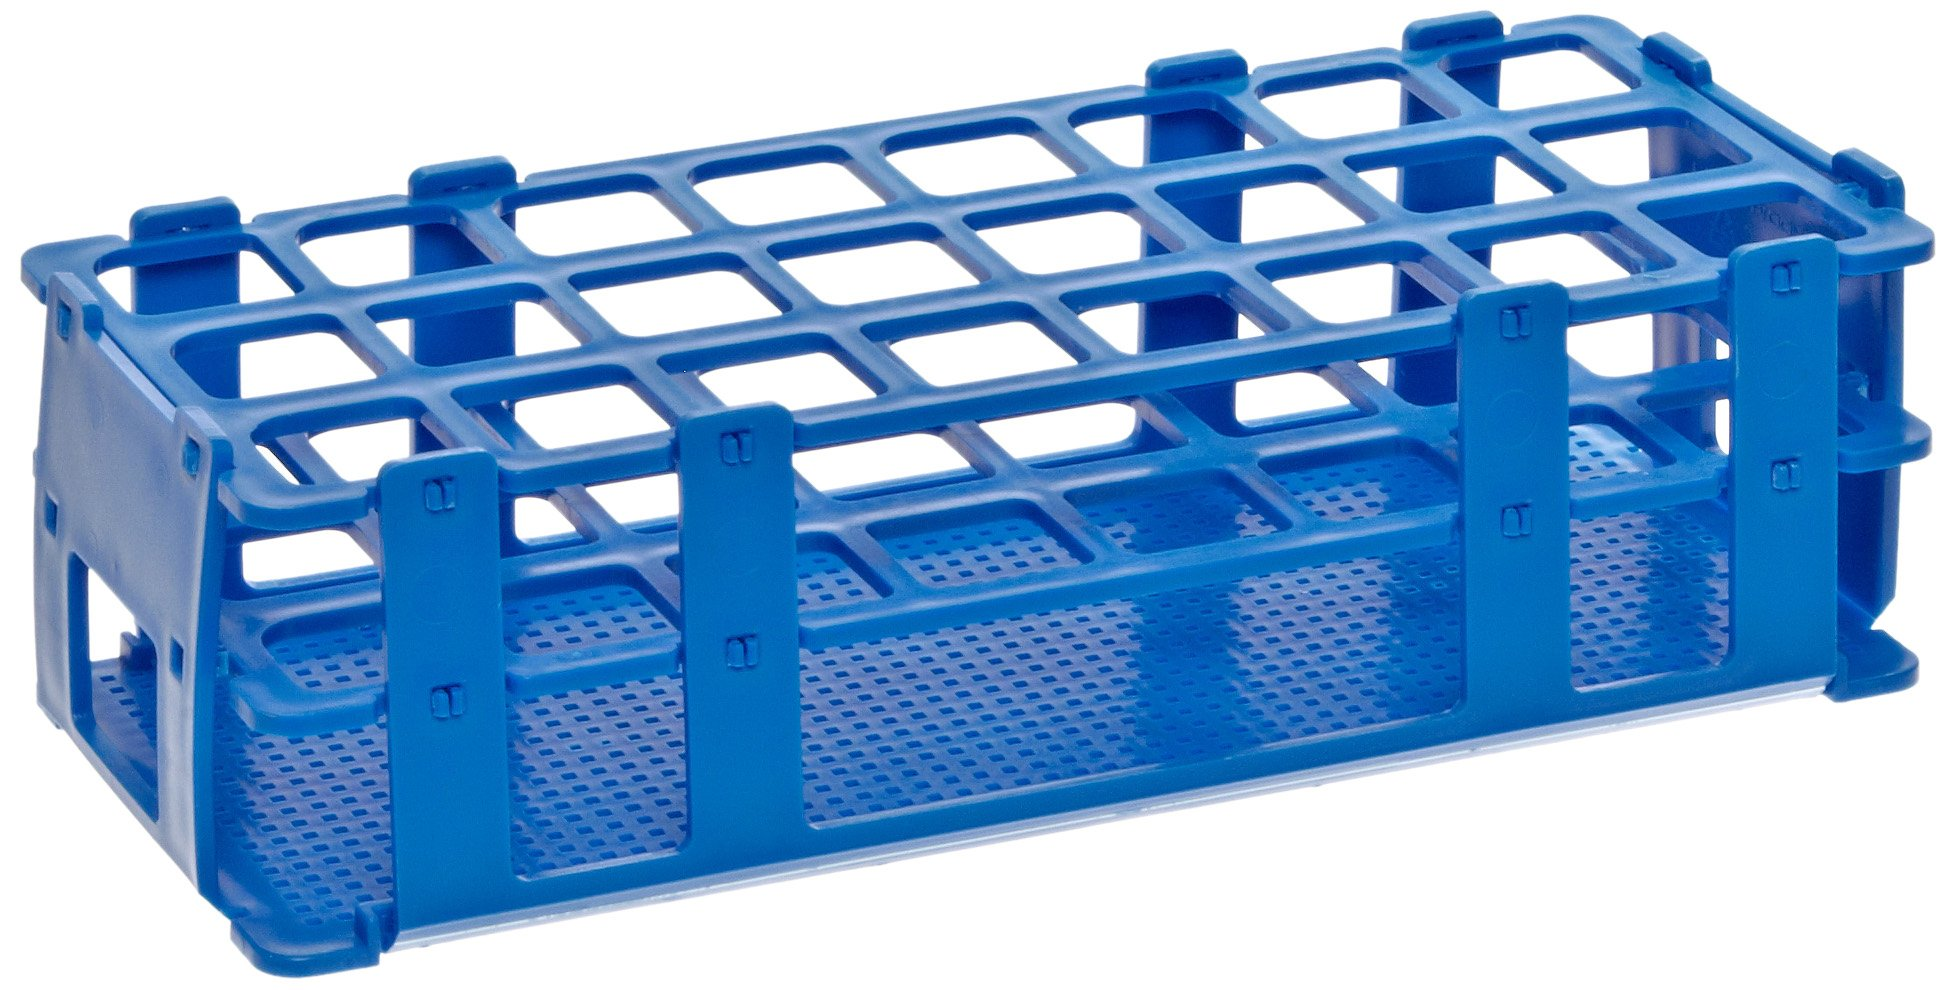 Thermo Scientific ELED 118466 Test Tube Sample Rack, For Plastic Model SWB1122 Series Shaking Water Baths or RSWB3222 Refrigerated Shaking Water Bath Series